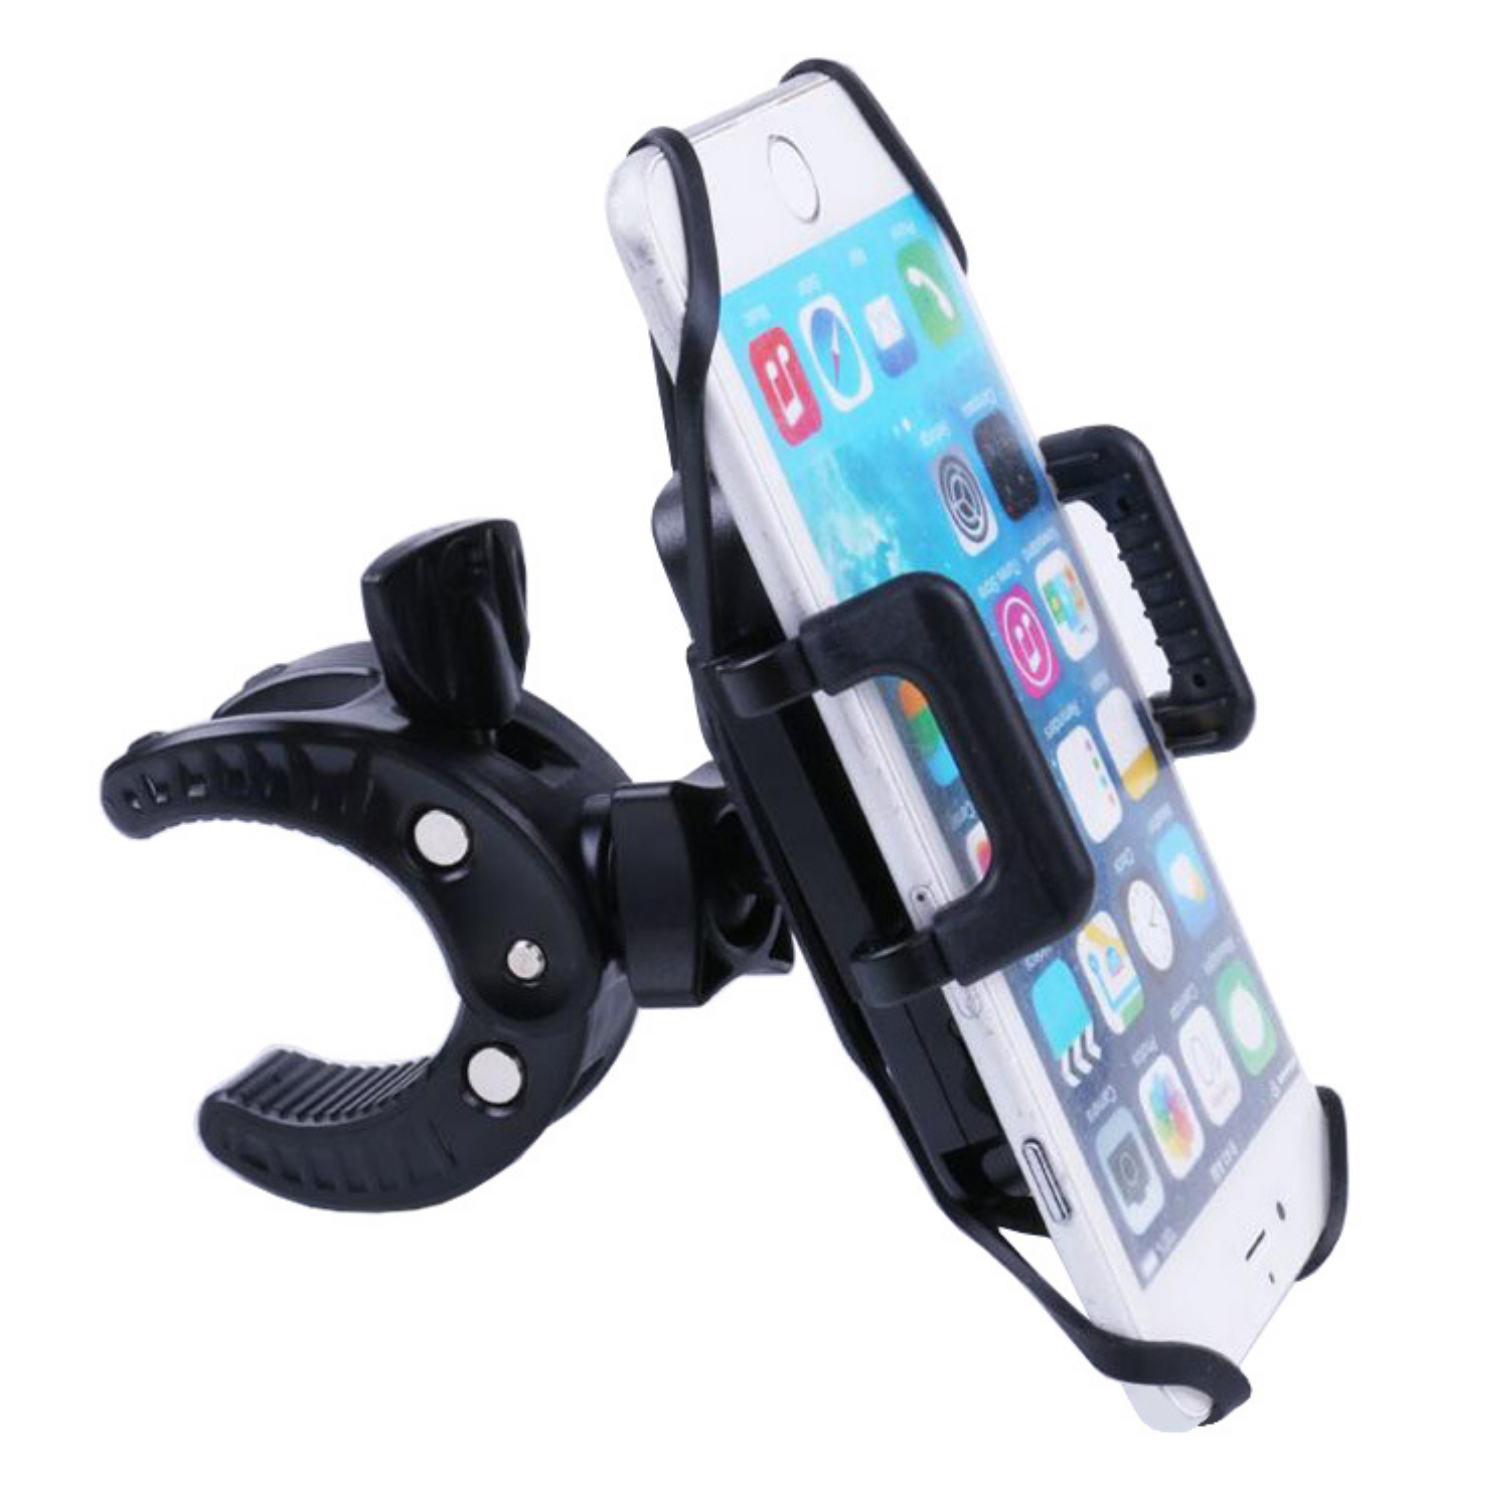 Redgum Mobile Phone Holder For Wheelchair, Walker, Mobility Scooter